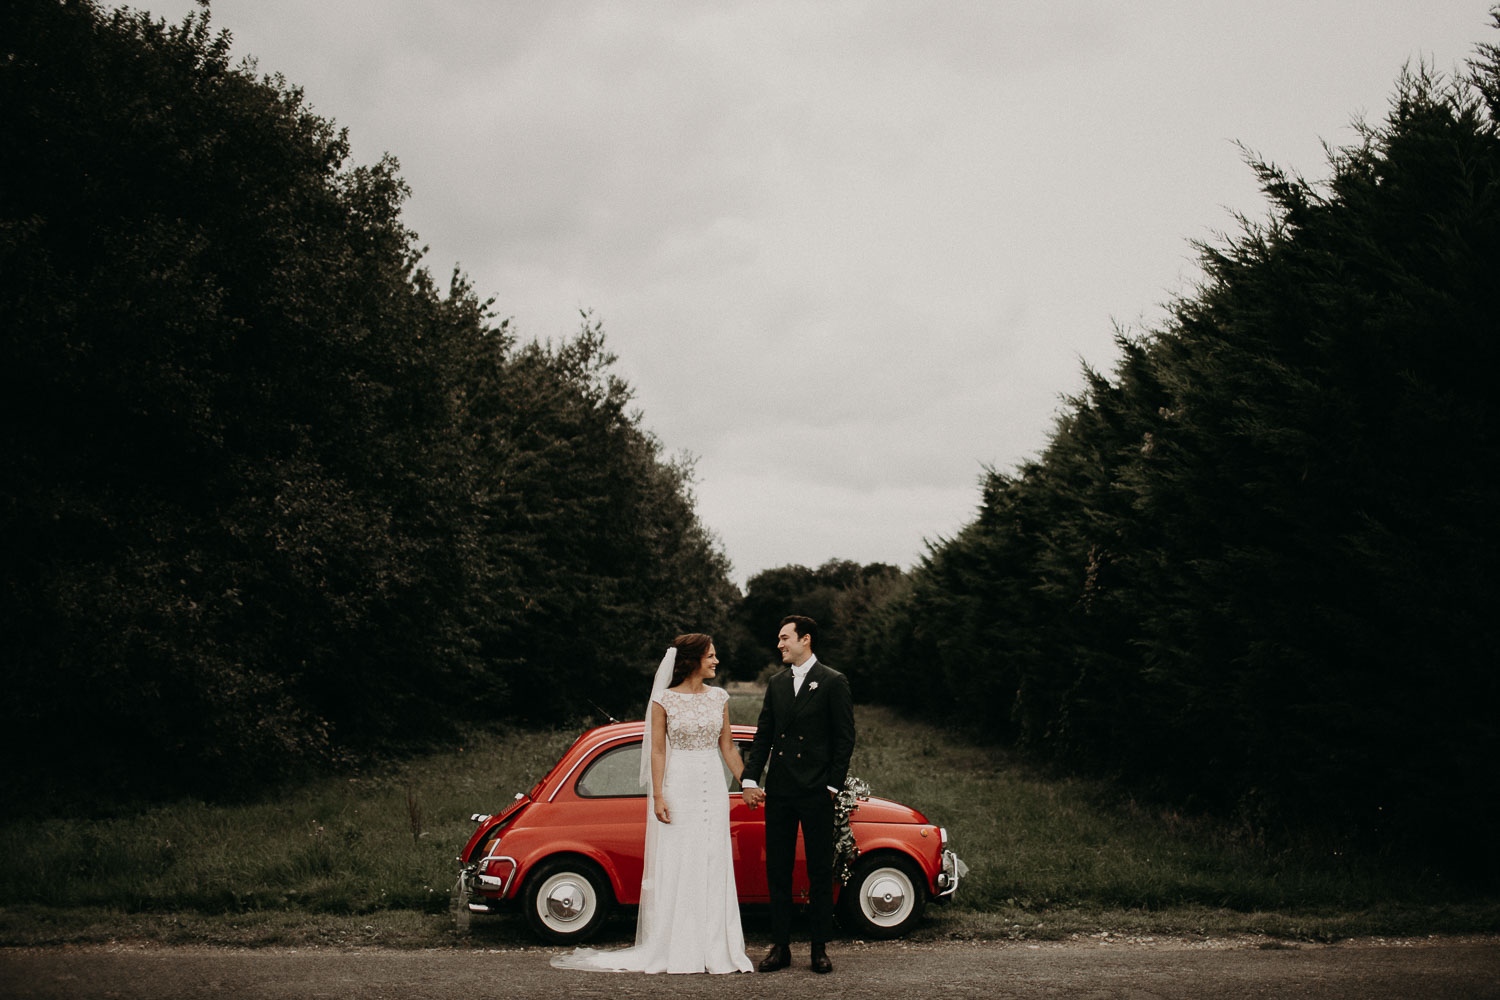 Voiture mariage Fiat 500 Picardie